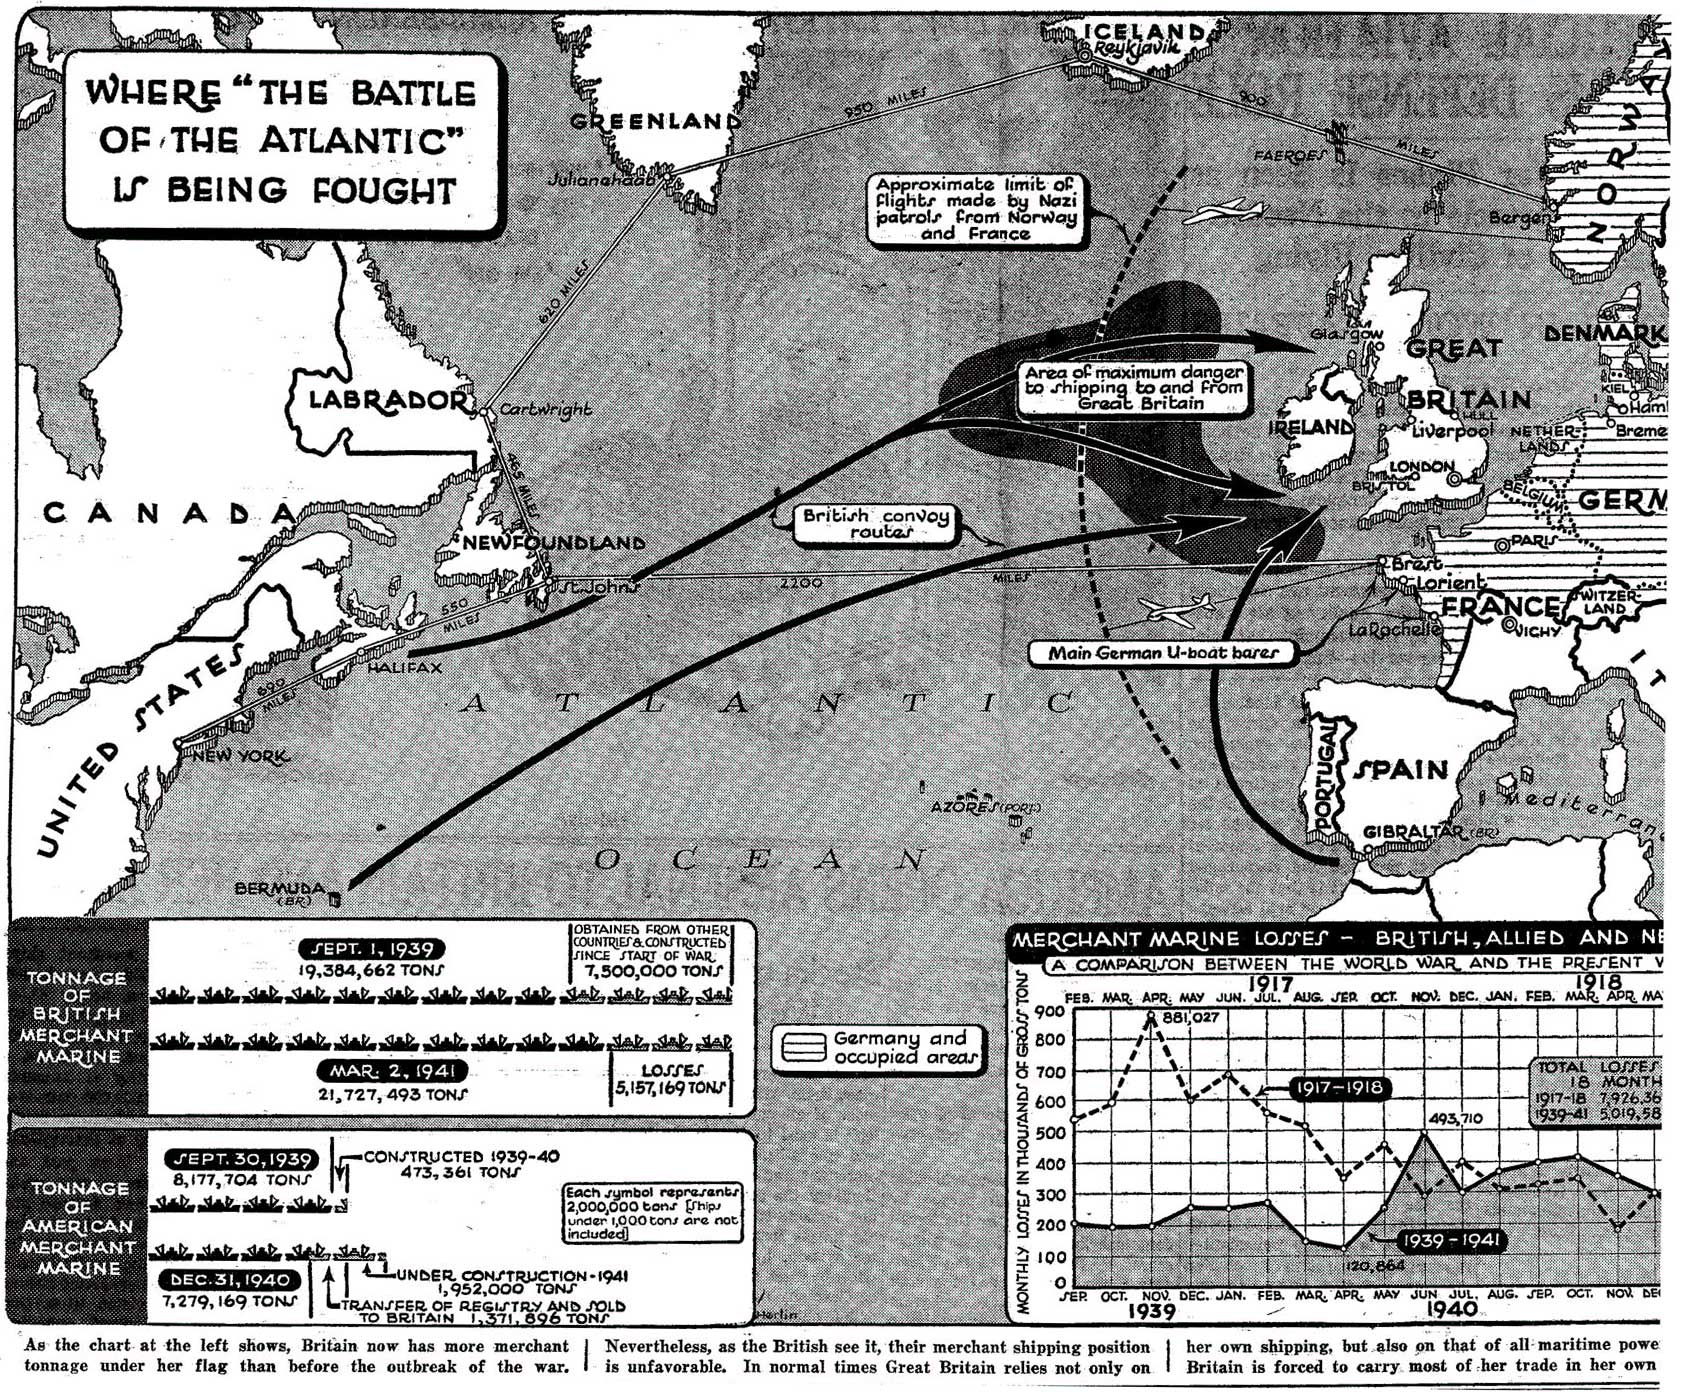 battle of the atlantic essay View battle of the atlantic research papers on academiaedu for free.